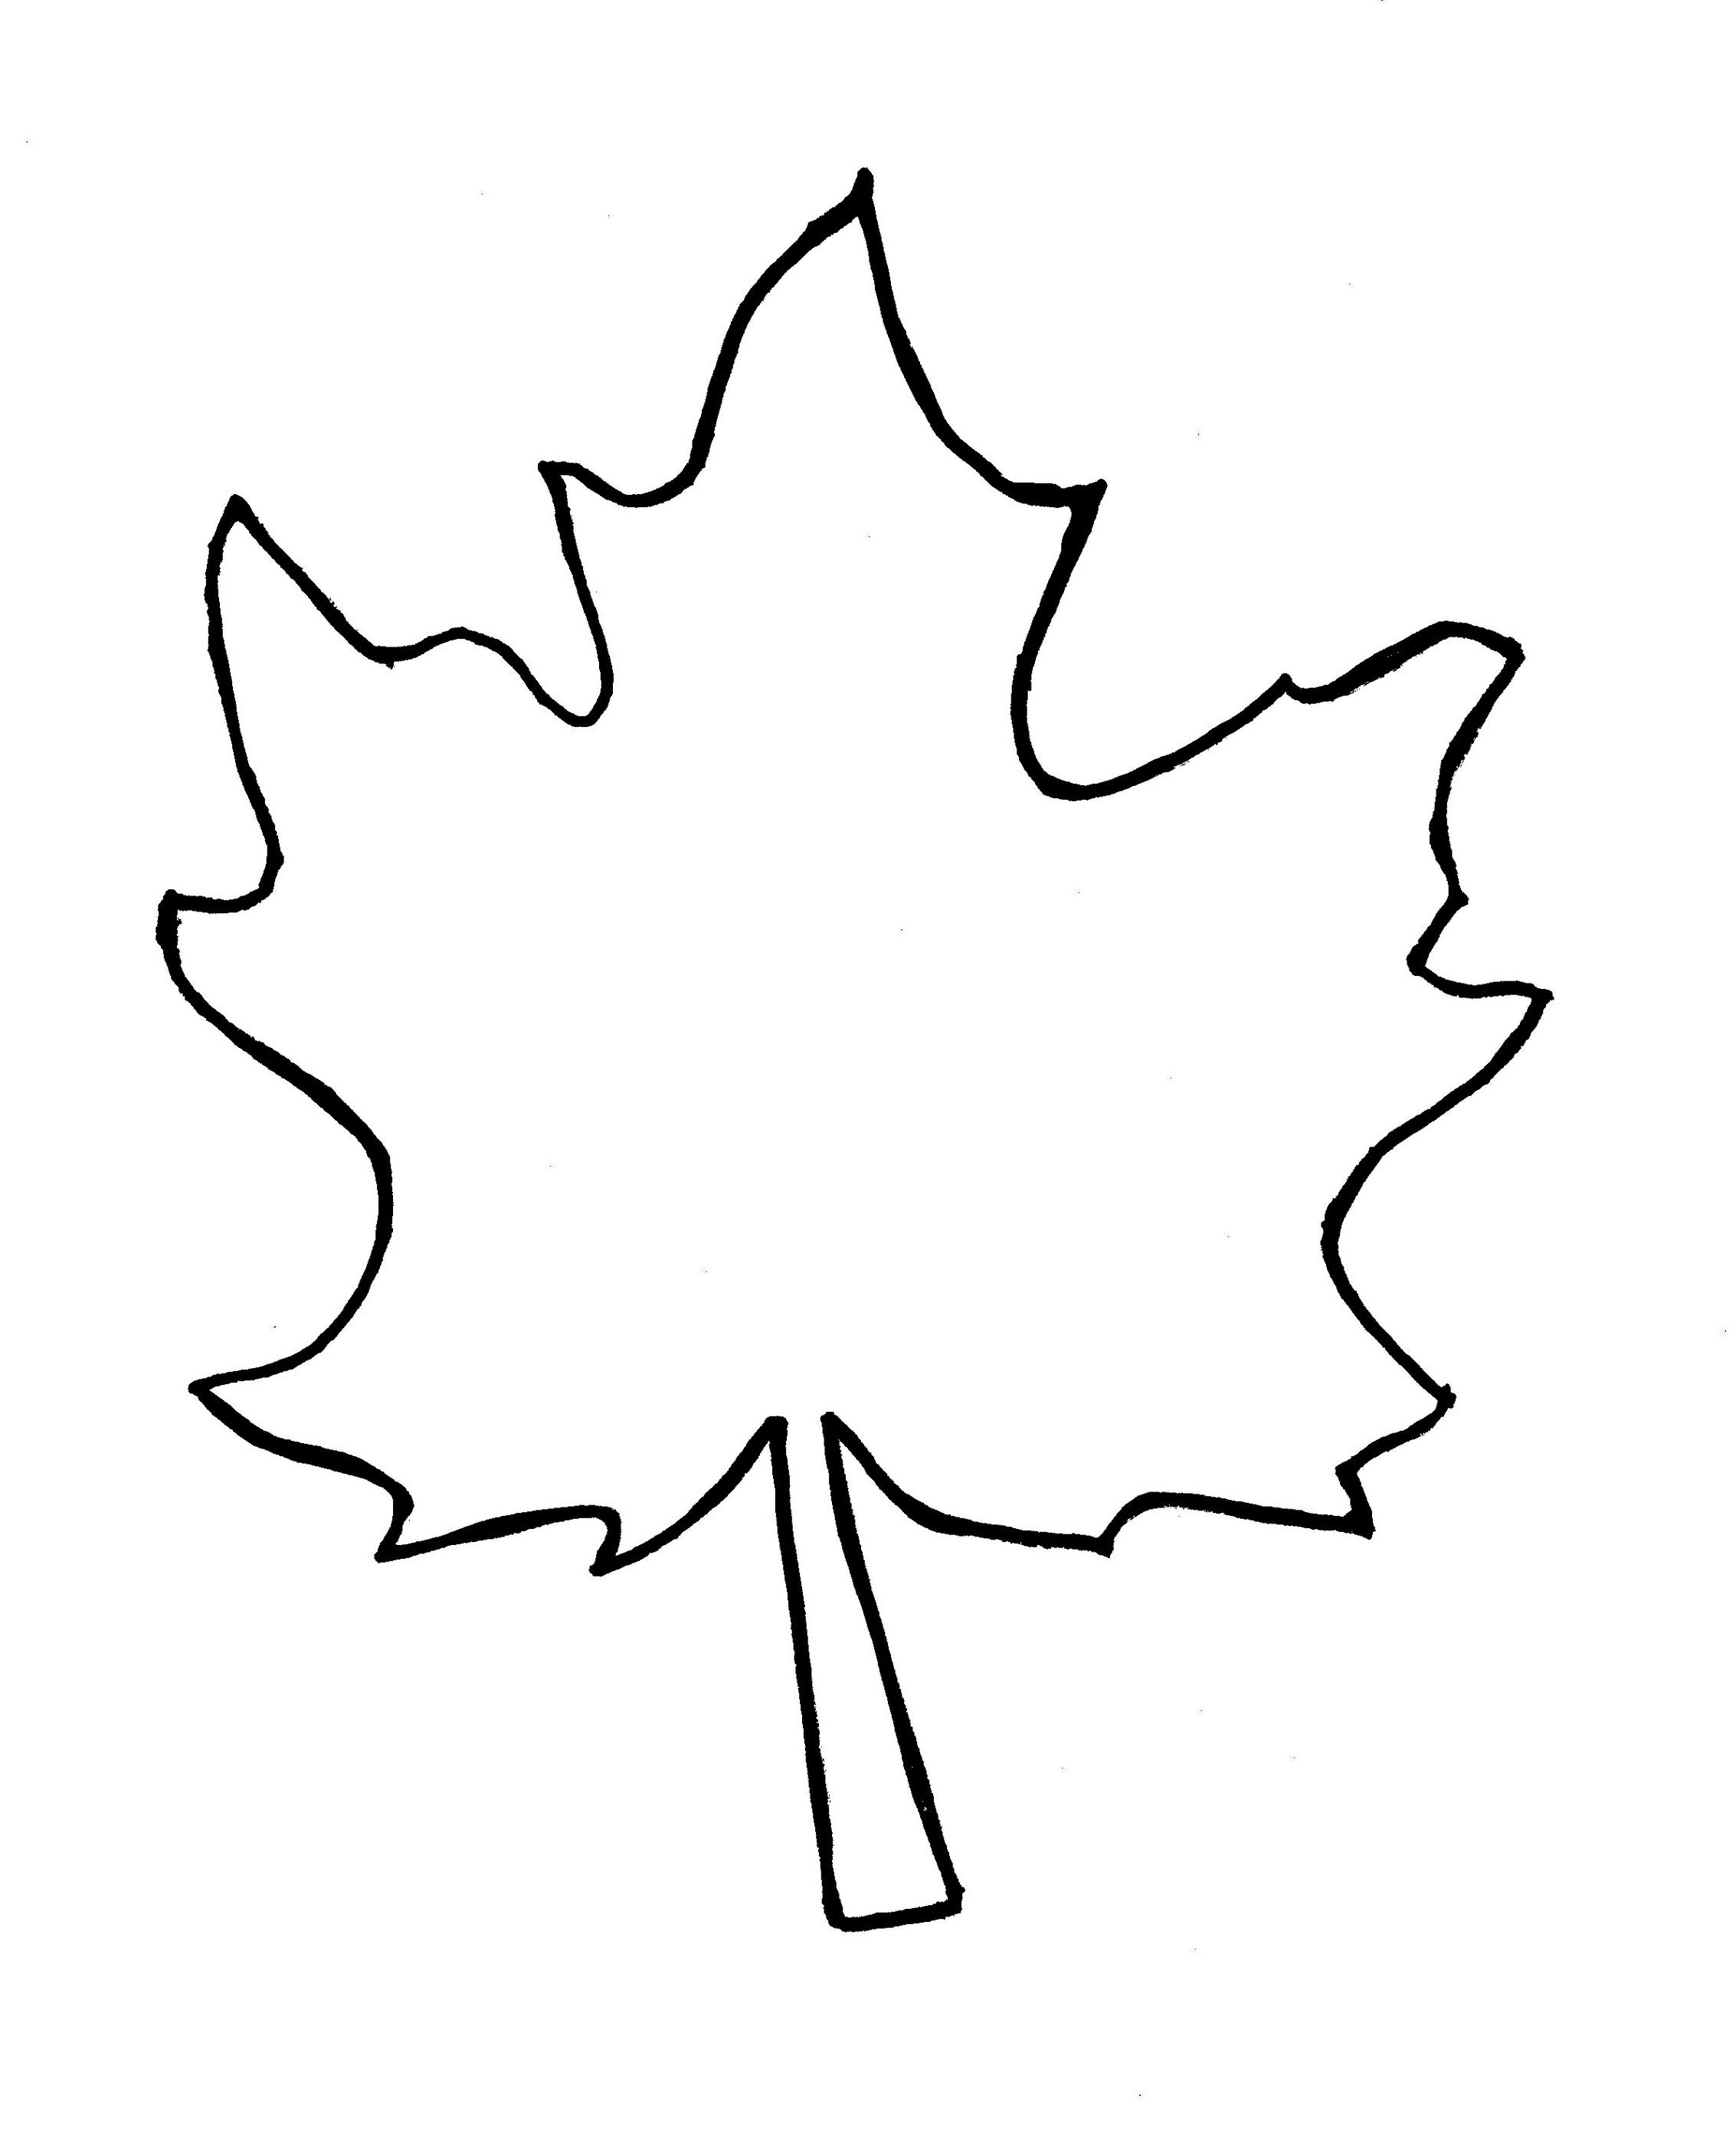 Autumn Leaf Outline Template Clipart Free To Use Clip Art Resource 2 - Free Printable Leaf Template